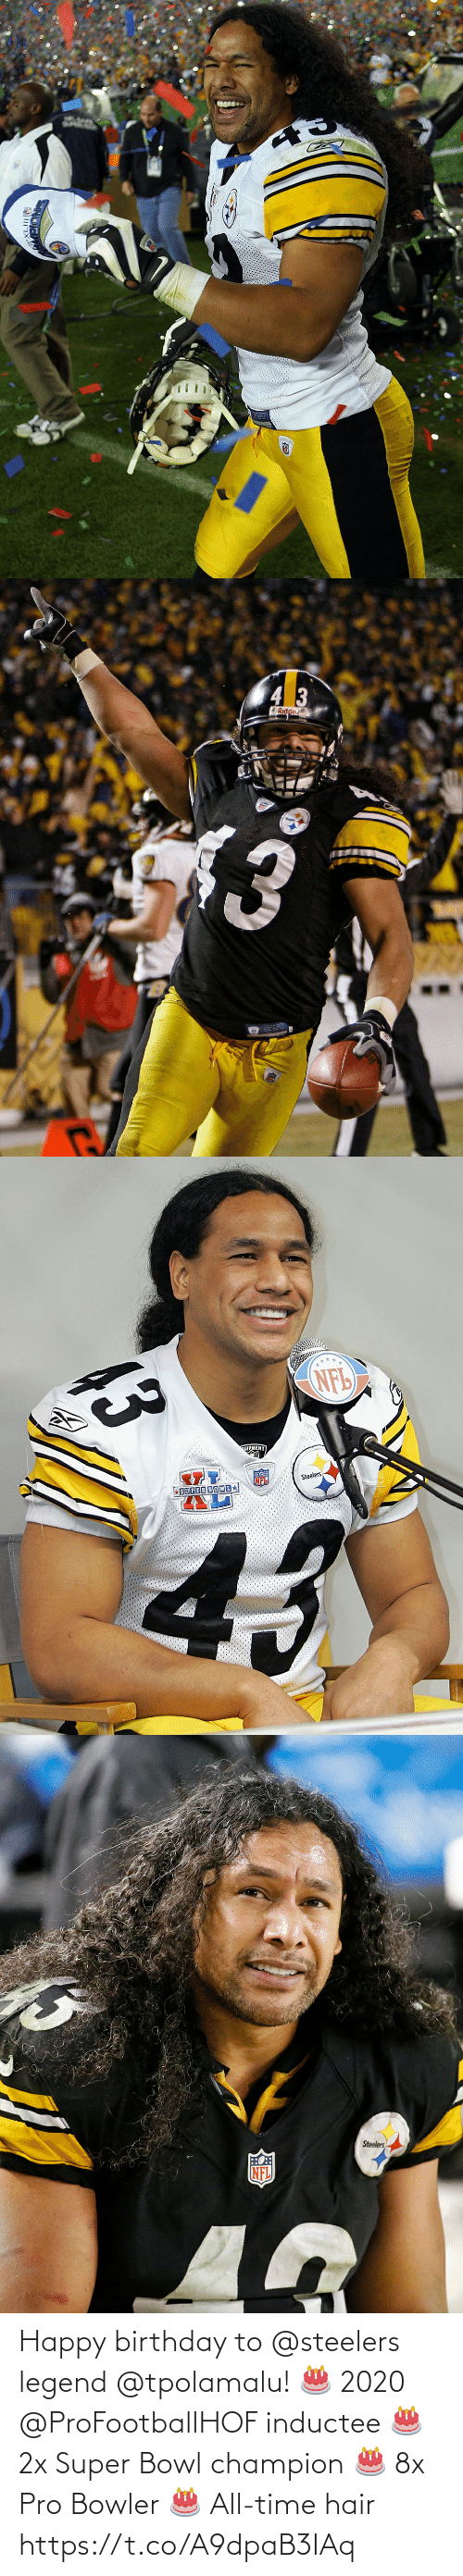 champion: Happy birthday to @steelers legend @tpolamalu! 🎂 2020 @ProFootballHOF inductee 🎂 2x Super Bowl champion 🎂 8x Pro Bowler 🎂 All-time hair https://t.co/A9dpaB3IAq